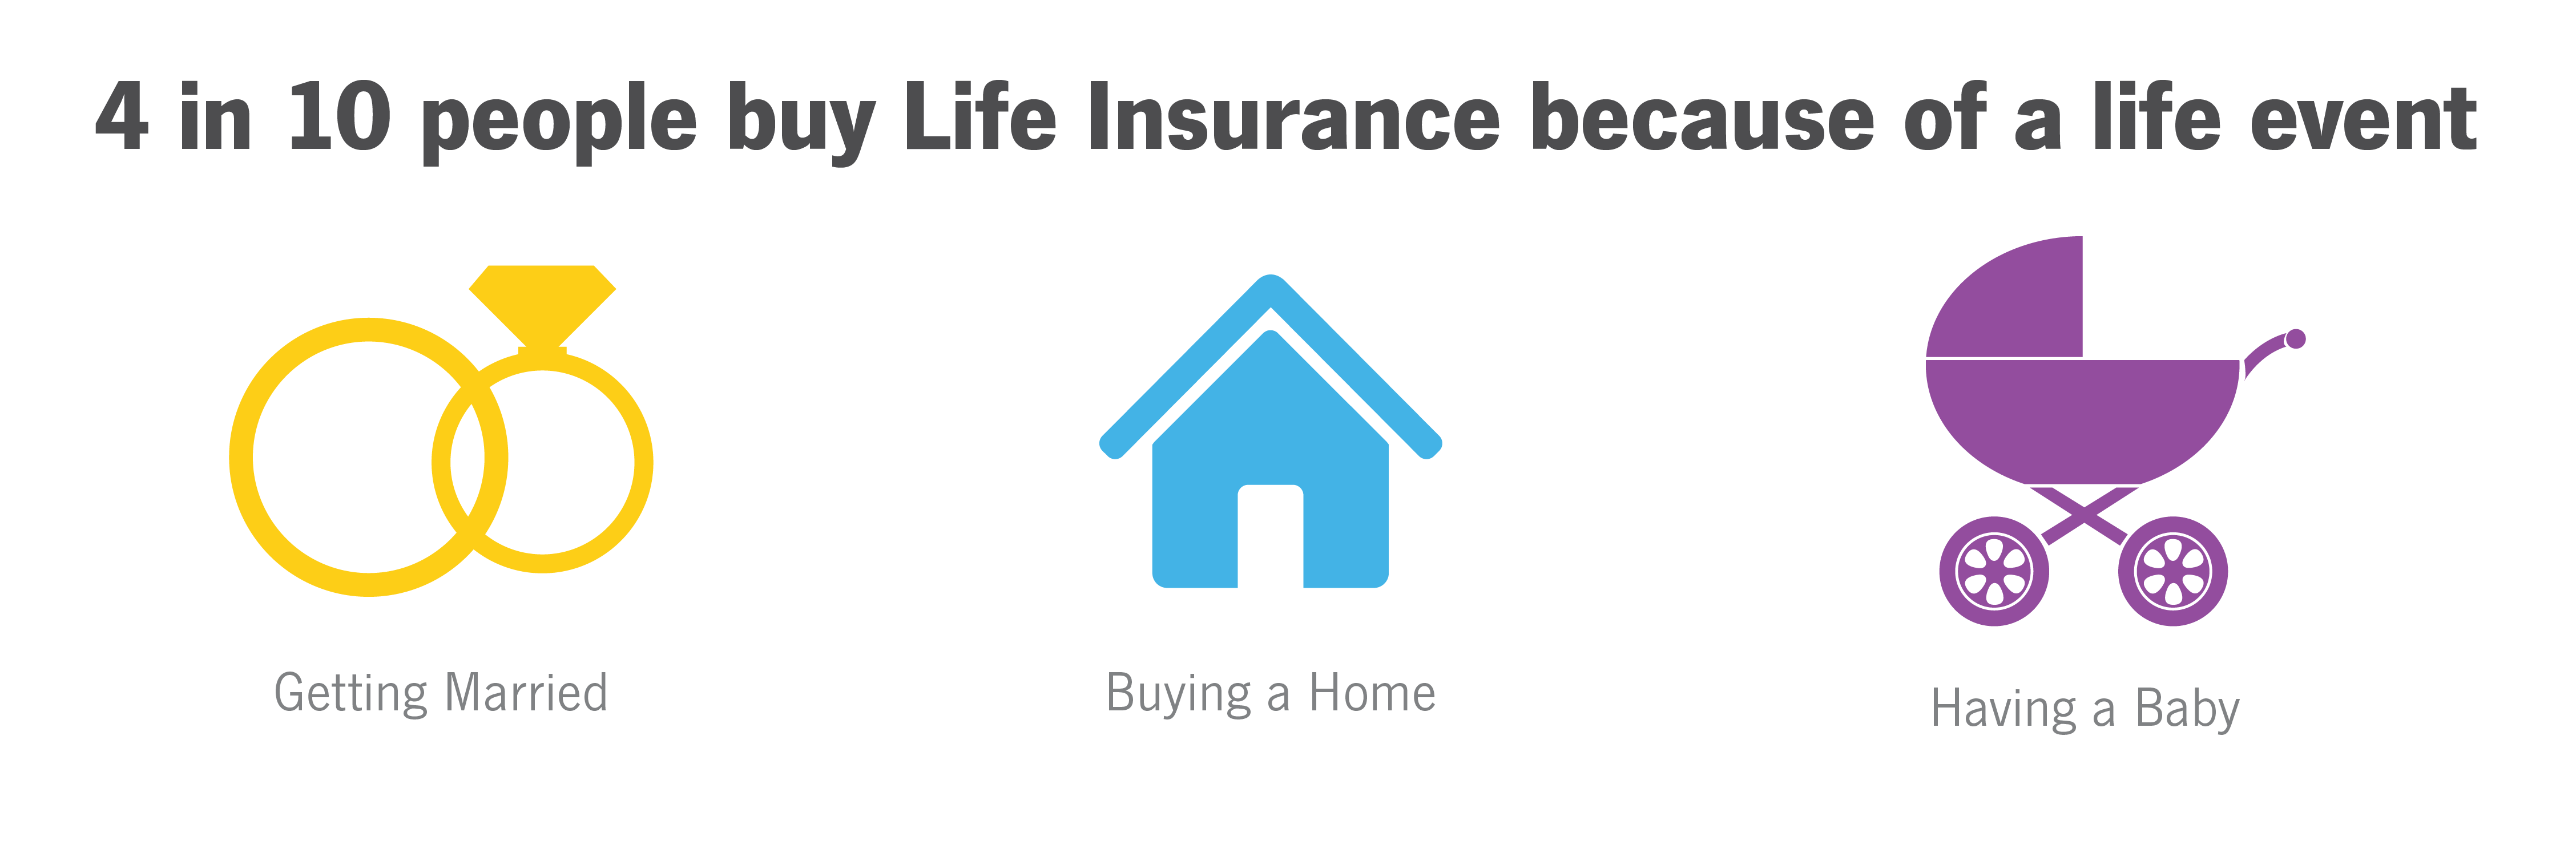 LIMRA Life Insurance